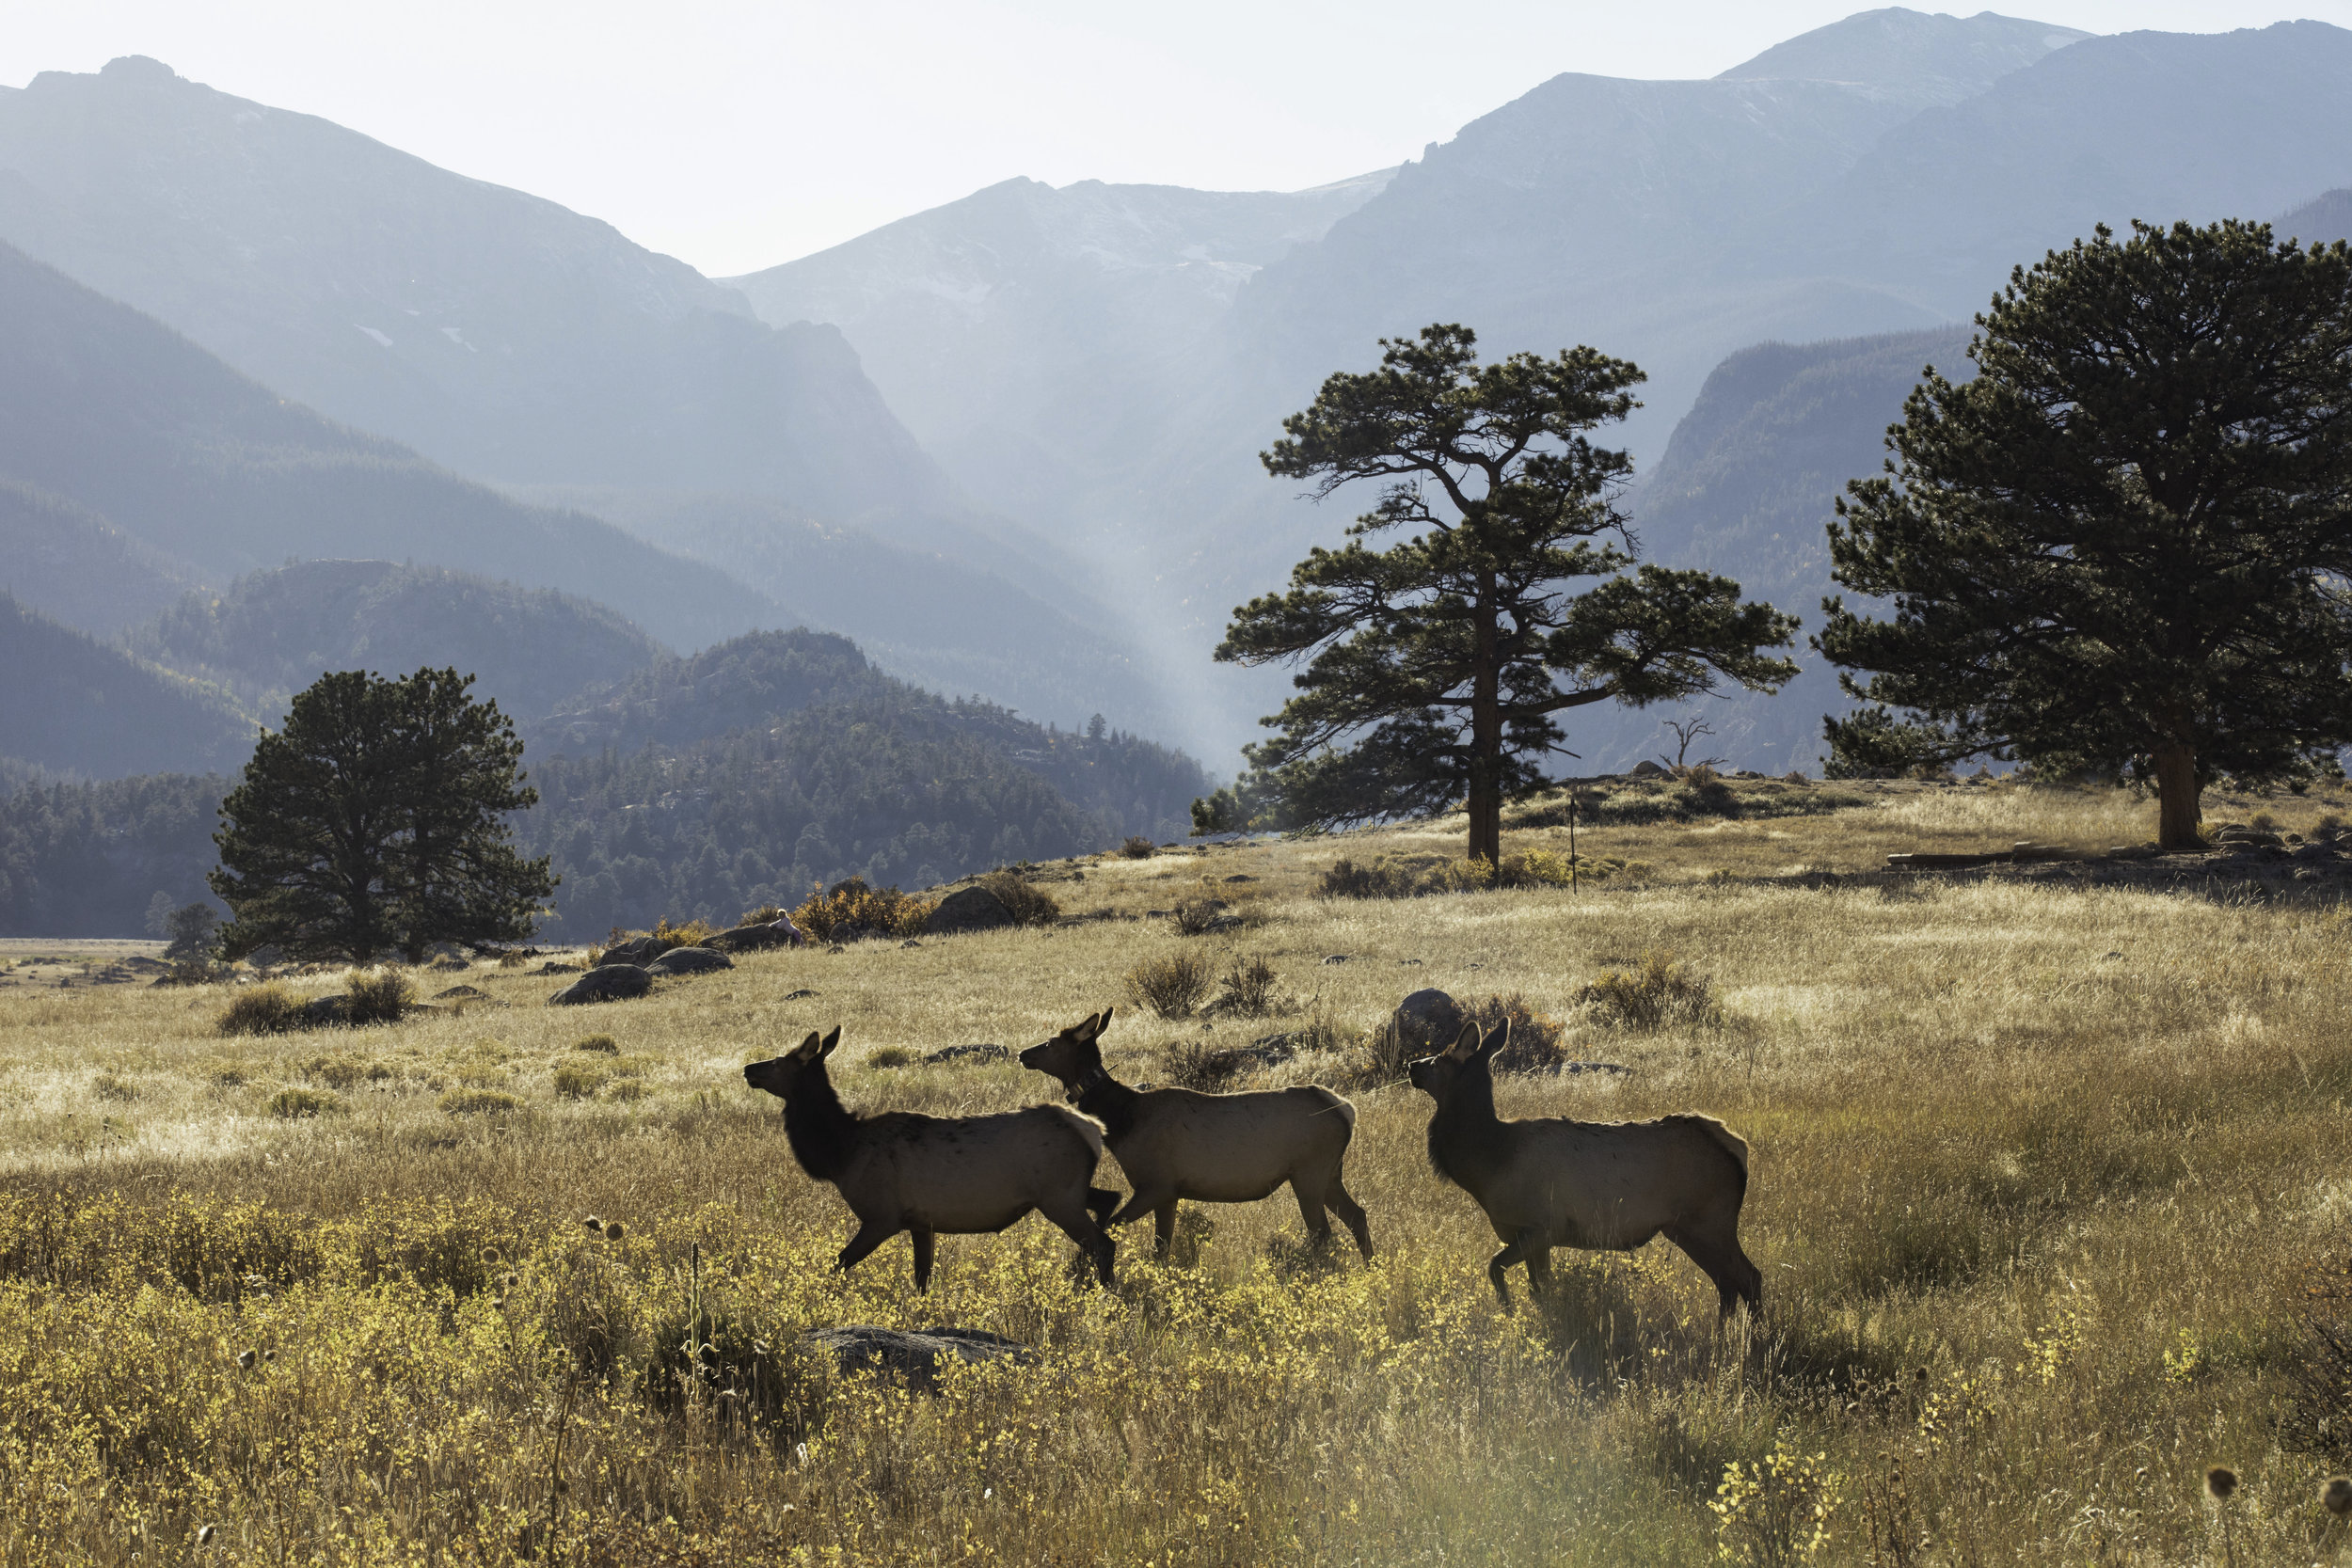 Elk running through the meadows at the Rocky Mountain National Park